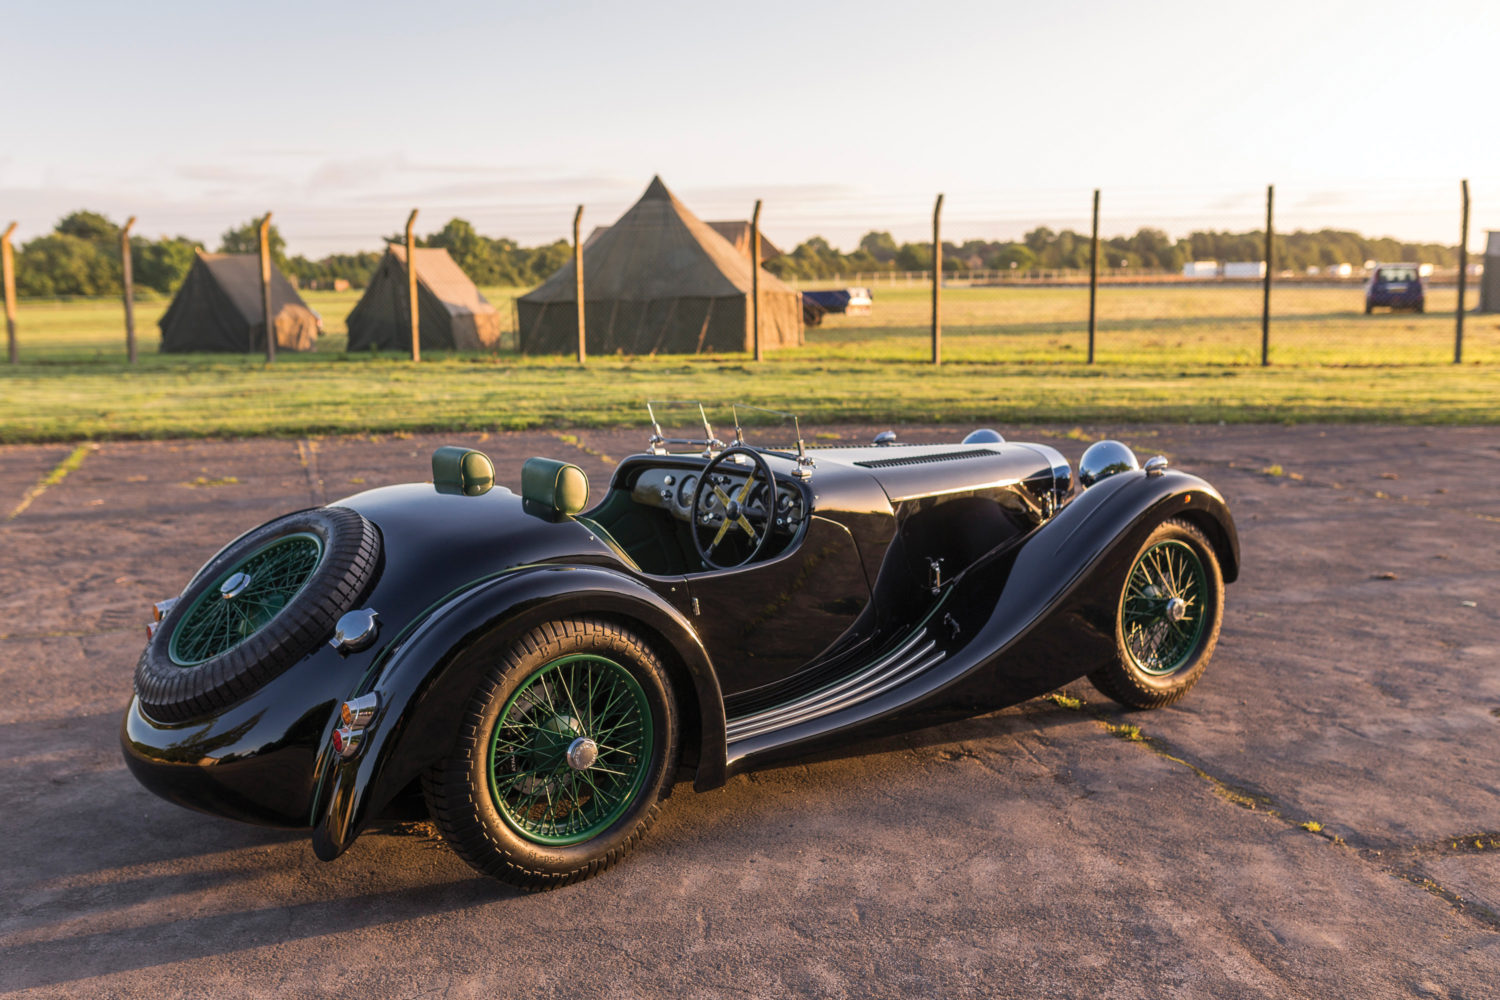 Concours of Elegance 2016 to host Atalanta debut